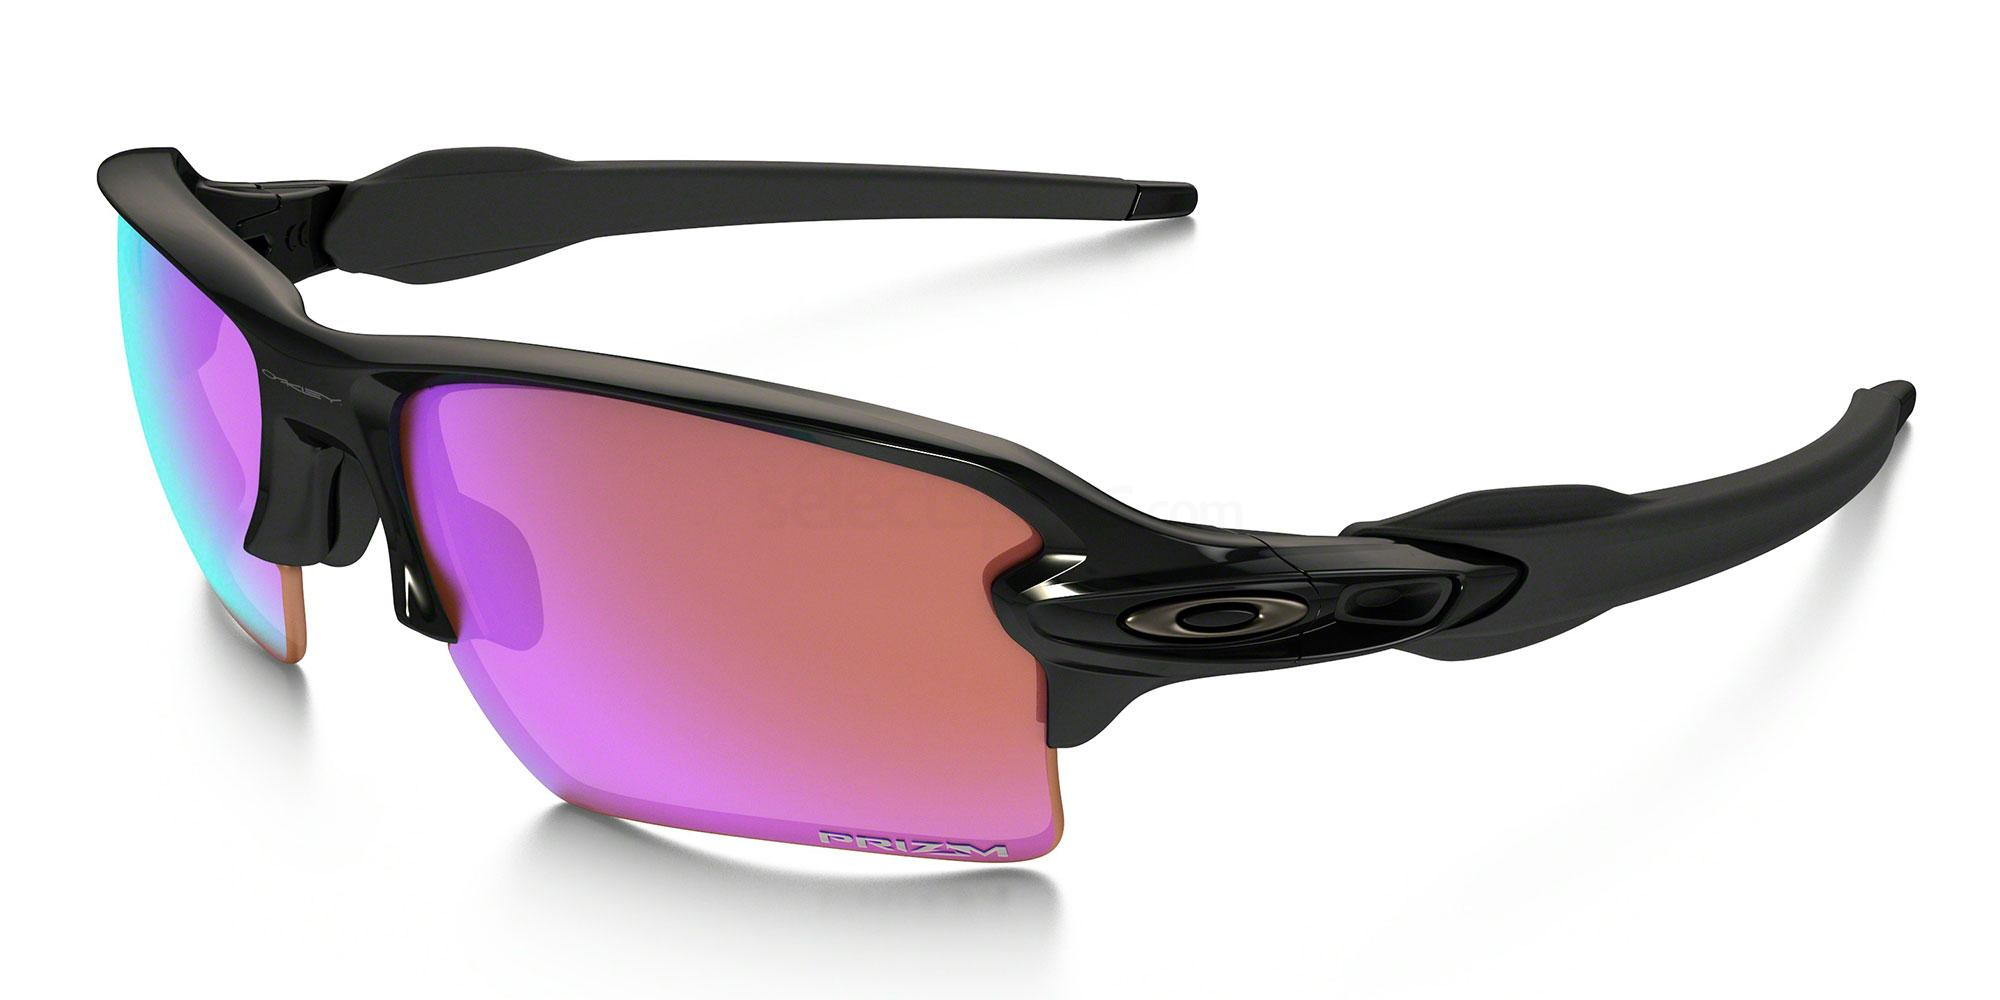 918805 OO9188 PRIZM GOLF FLAK 2.0 XL Sunglasses, Oakley